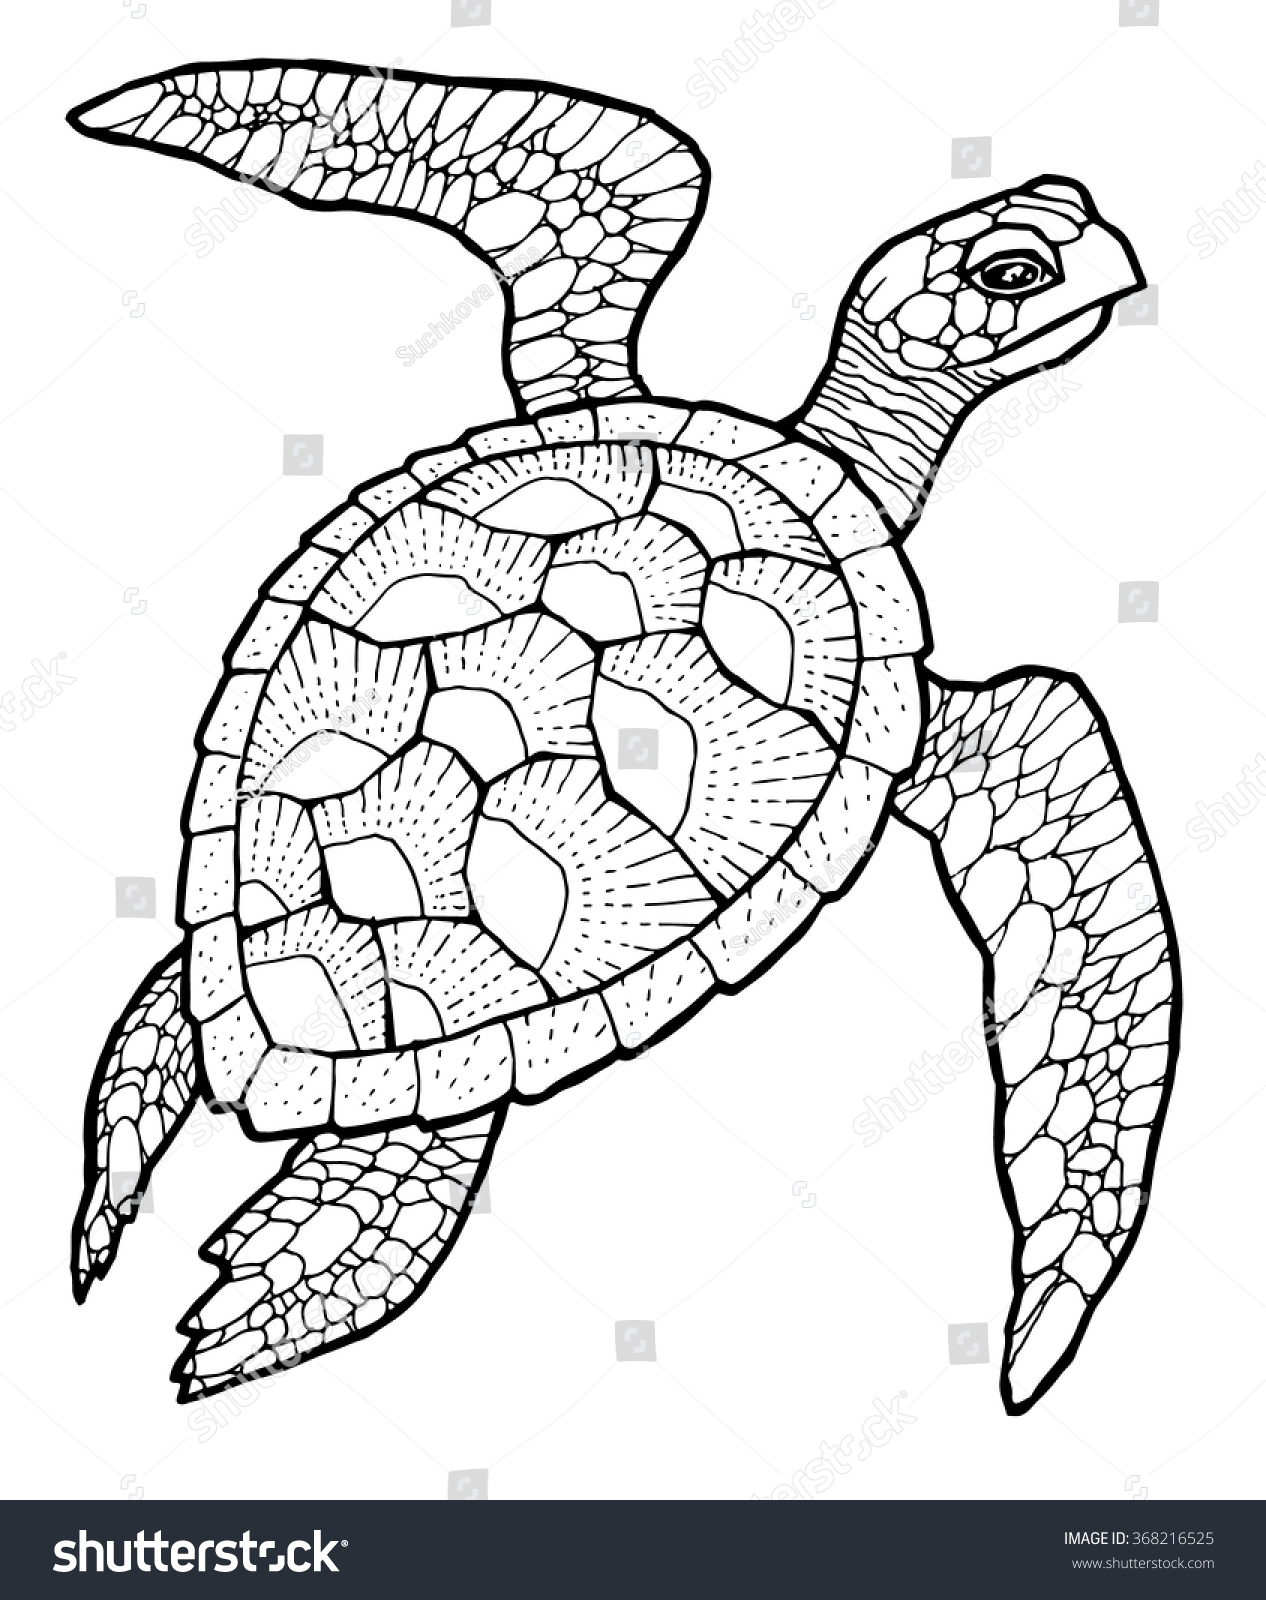 Uncategorized Drawing Of Sea Turtle sea turtle vector stylized drawing stock 368216525 drawing